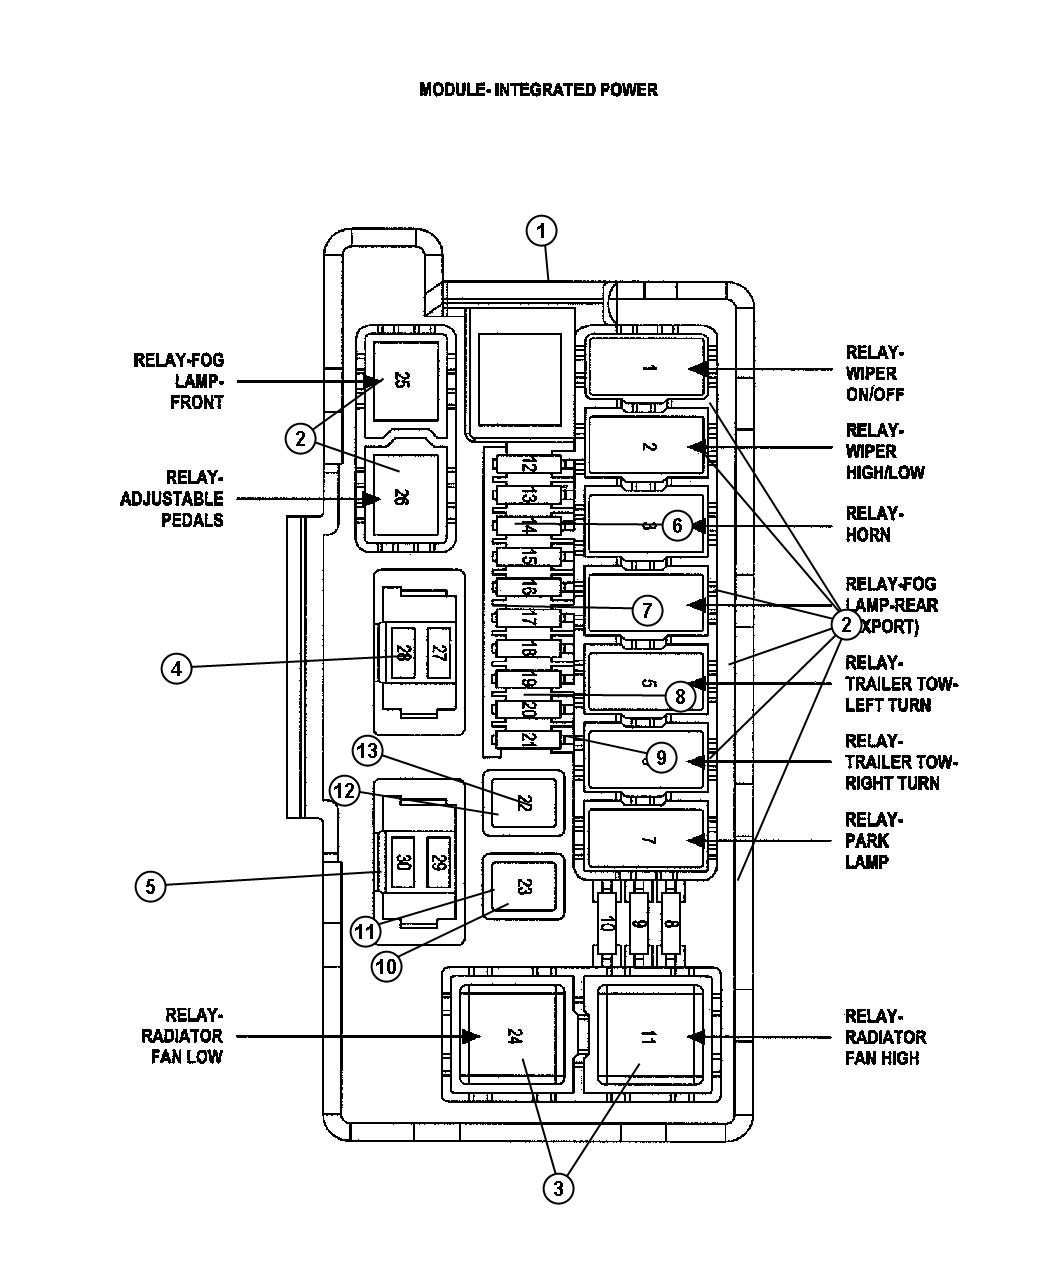 2002 Jeep Grand Cherokee Ac Wiring Diagram Online Fuse Box 2006 Liberty Library 2000 Schematic